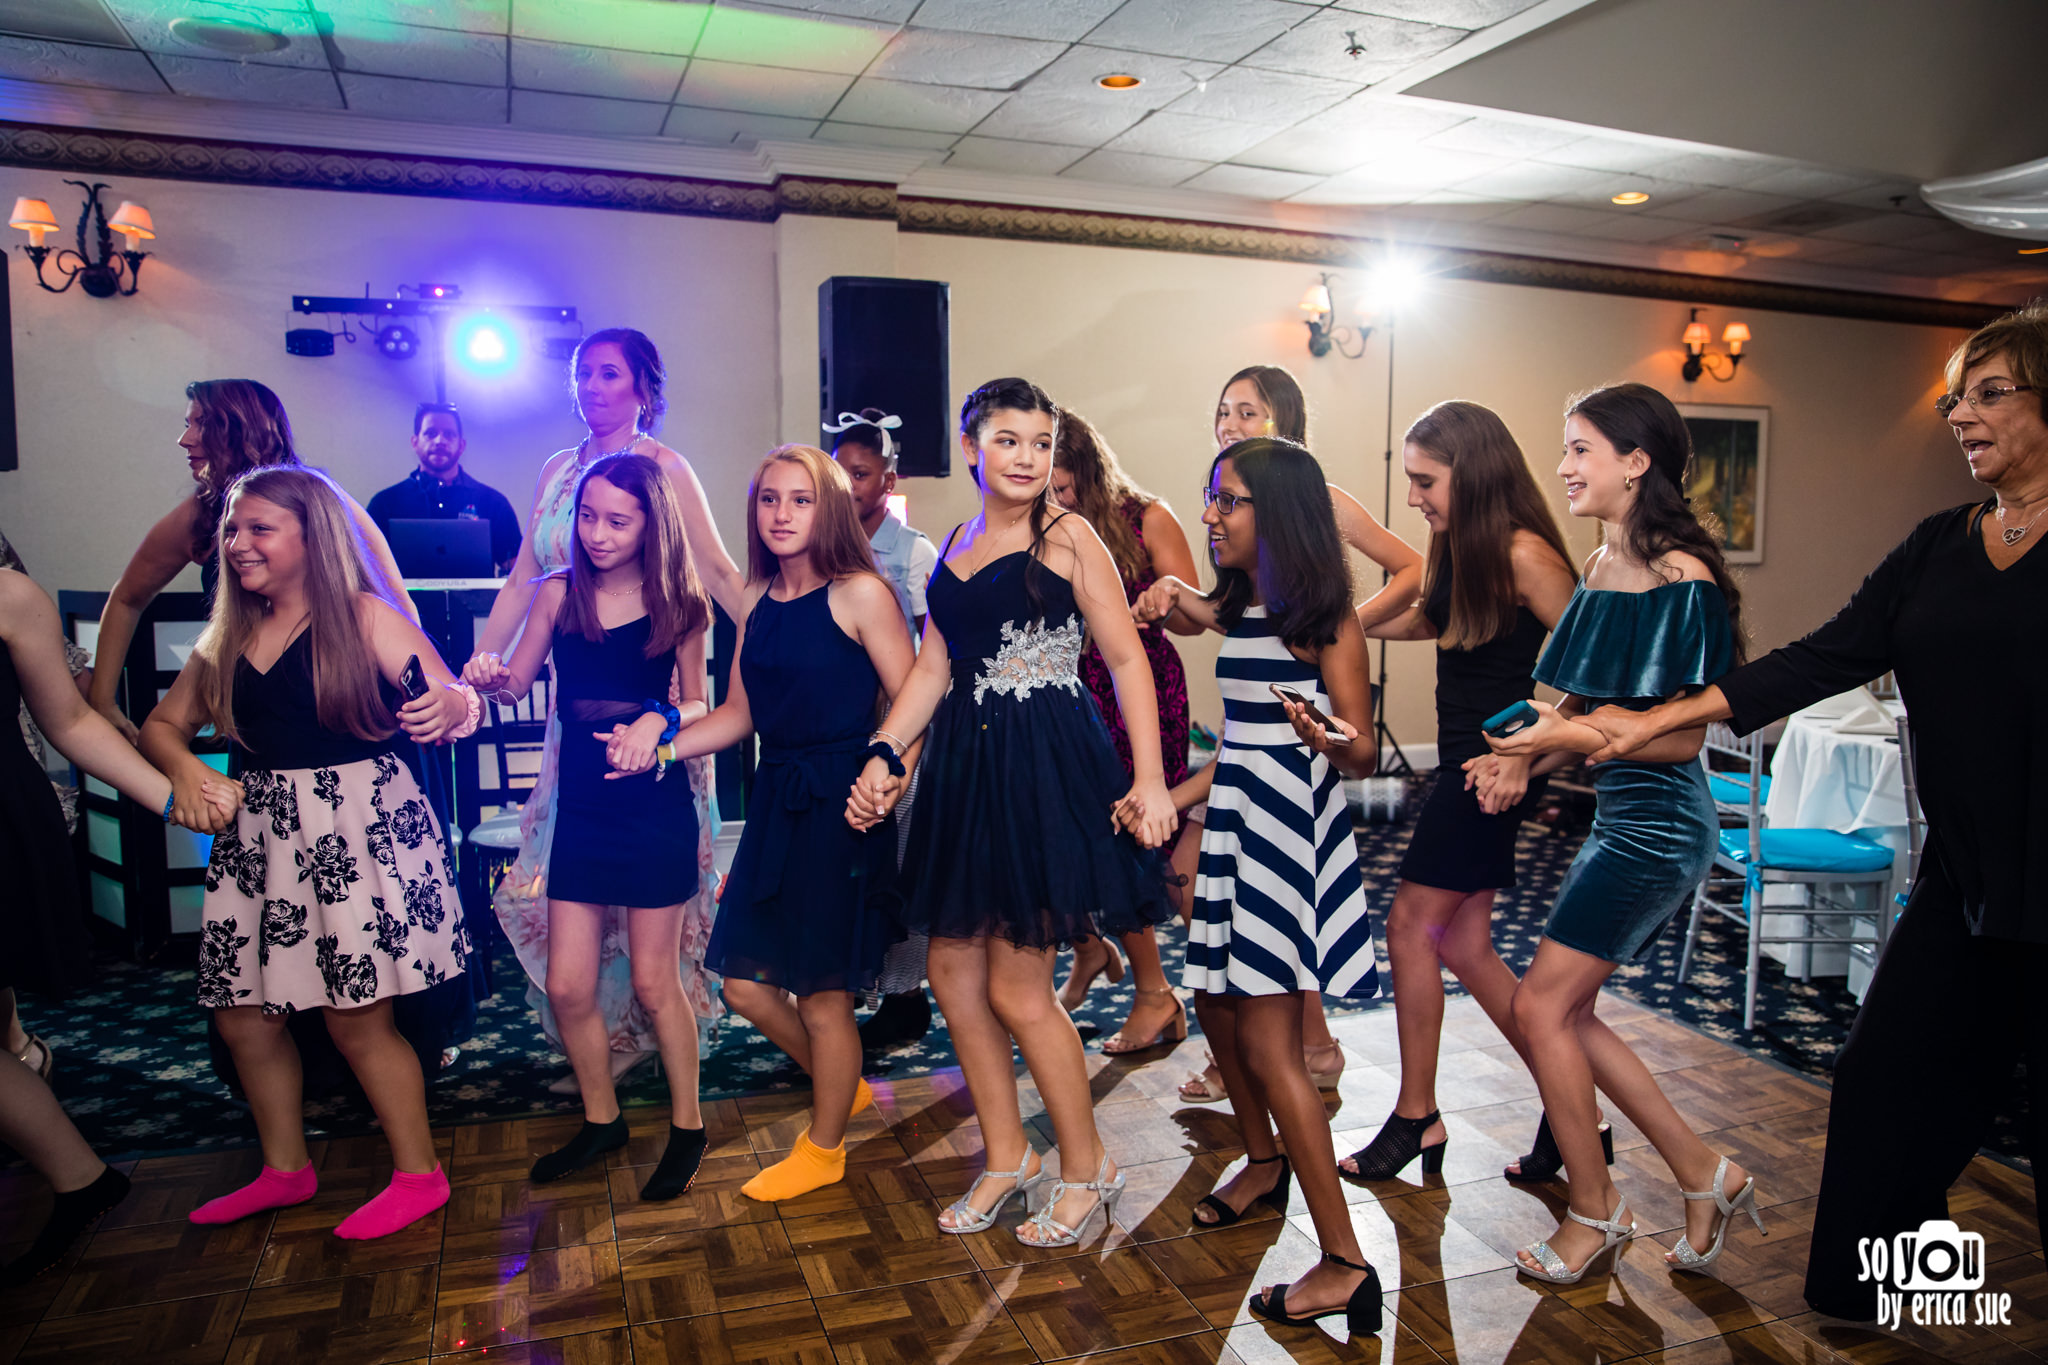 so-you-by-erica-sue-bnai-mitzvah-photographer-delray-beach-golf-club-fl-3229.jpg